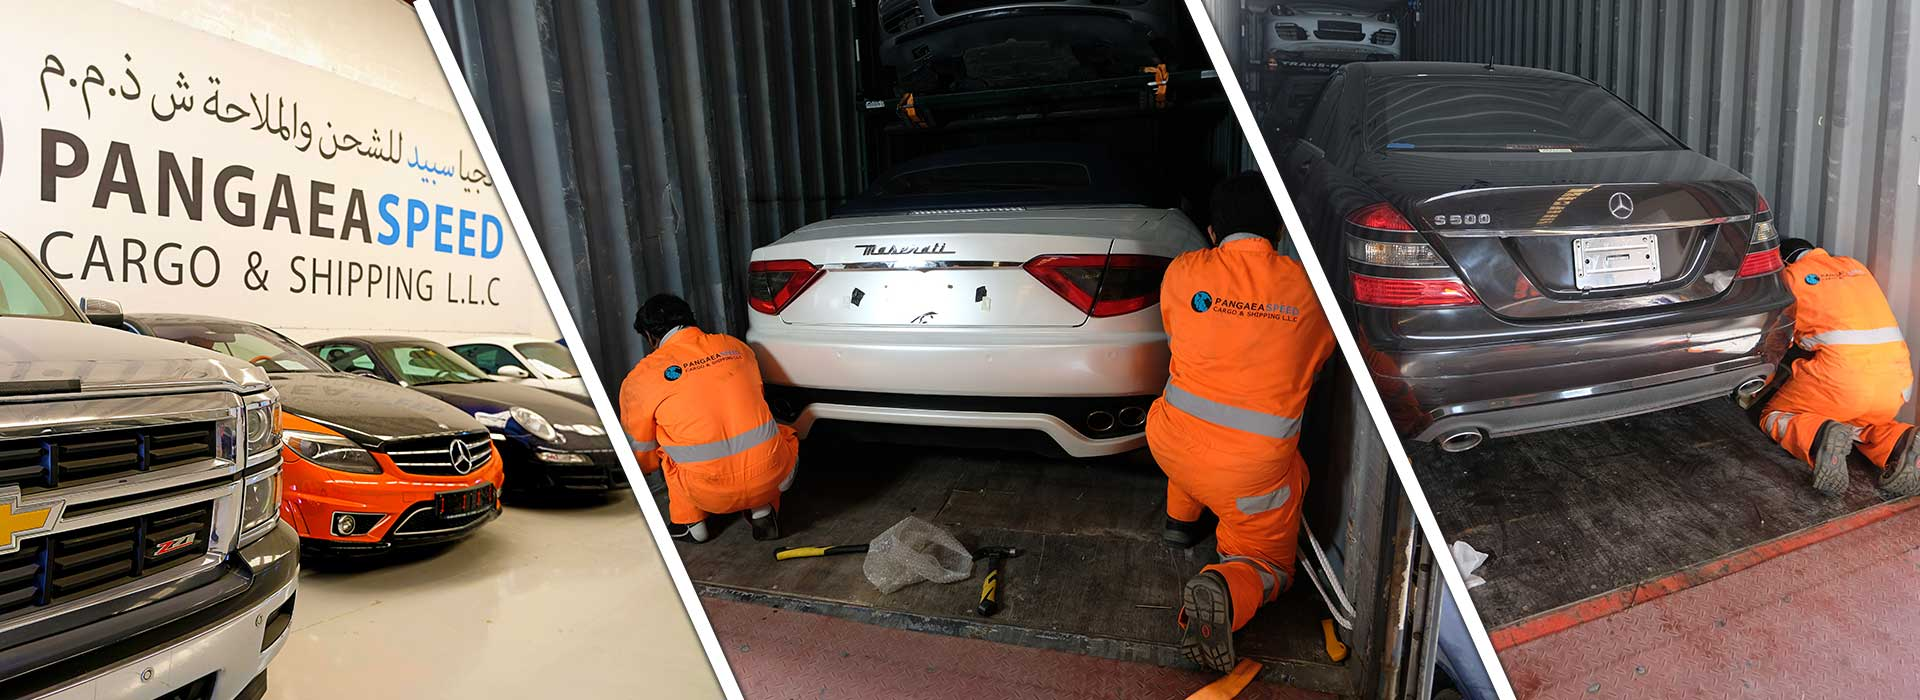 Car-shipping-Dubai-PangaeaSpeed